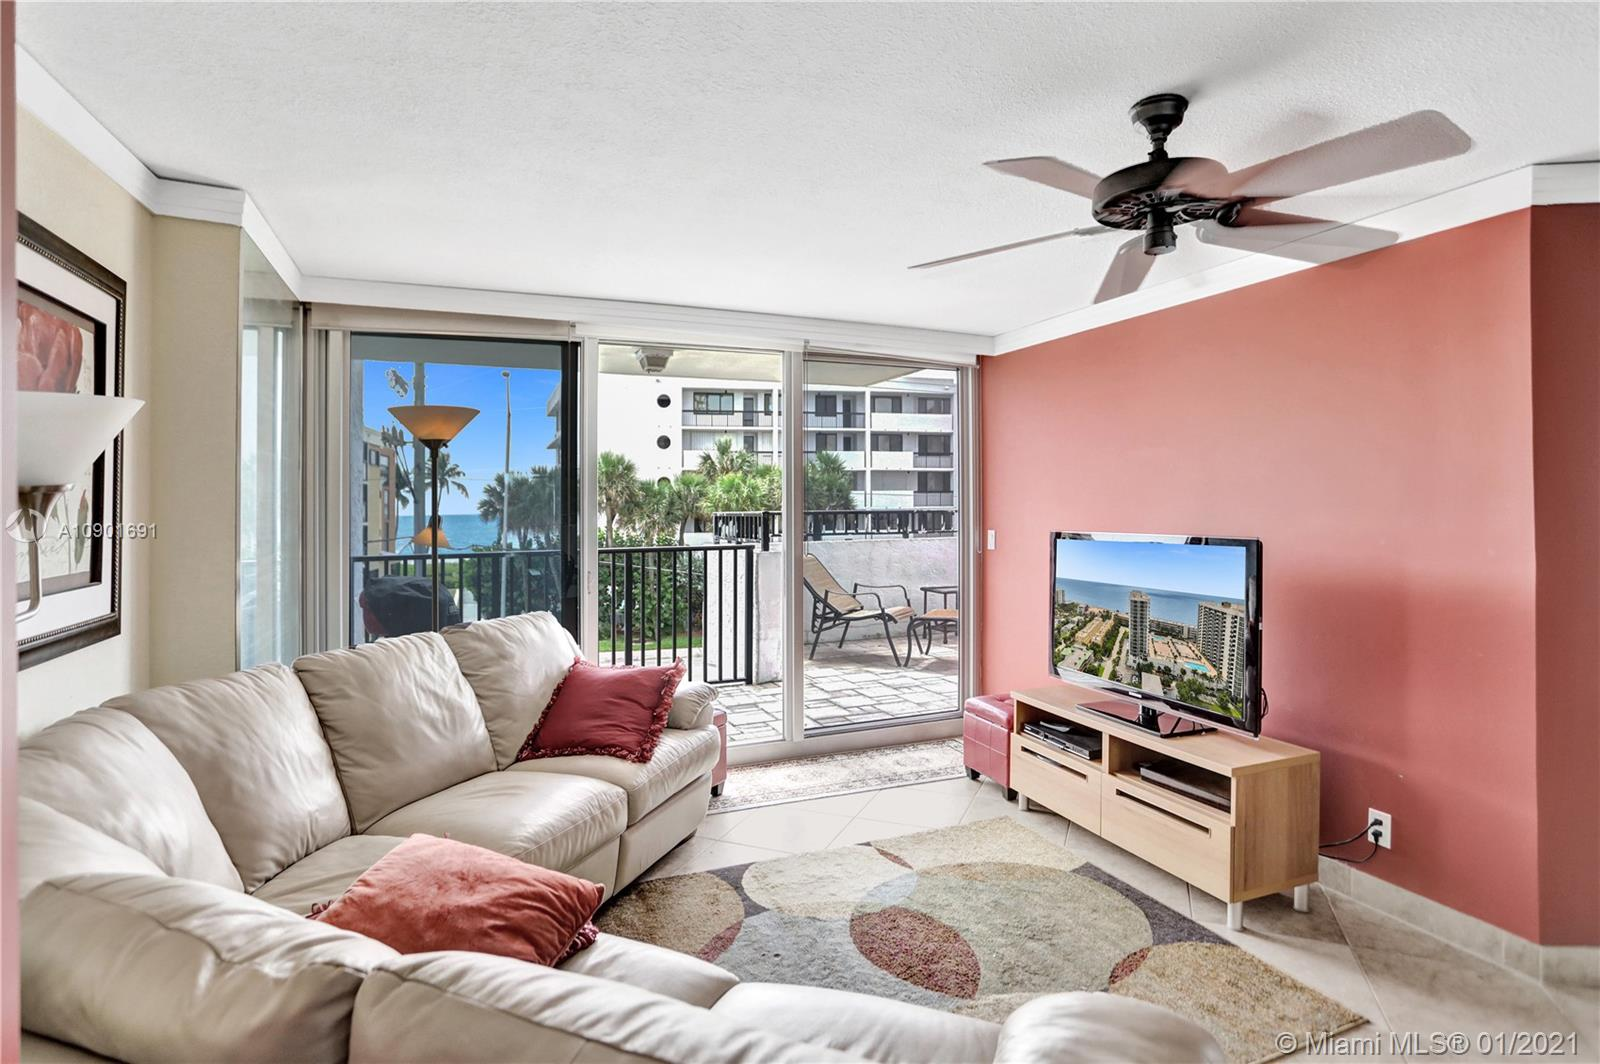 This ONE OF A KIND END UNIT LANAI features: DIRECT ocean views,  DIRECT OUTDOOR ACCESS FROM 5 hurricane impact sliding glass doors (1 from each room) to an OVERSIZED,WRAPAROUND PATIO w/room for BBQ, dining & relaxing (500+ sq ft), AND direct access to pool, tennis etc. Fully renovated w/ hi-end ss appliances, some electronic shades, tons of storage, open kitchen, split floor plan, avail TURNKEY. Bldg is across public beach w/easy access (see pics). Resort type living.  No rentals 1st year owned, but 90 day min lease 1 time per year thereafter. MUST SEE! This is a very special unit -- one of only two in the entire complex.